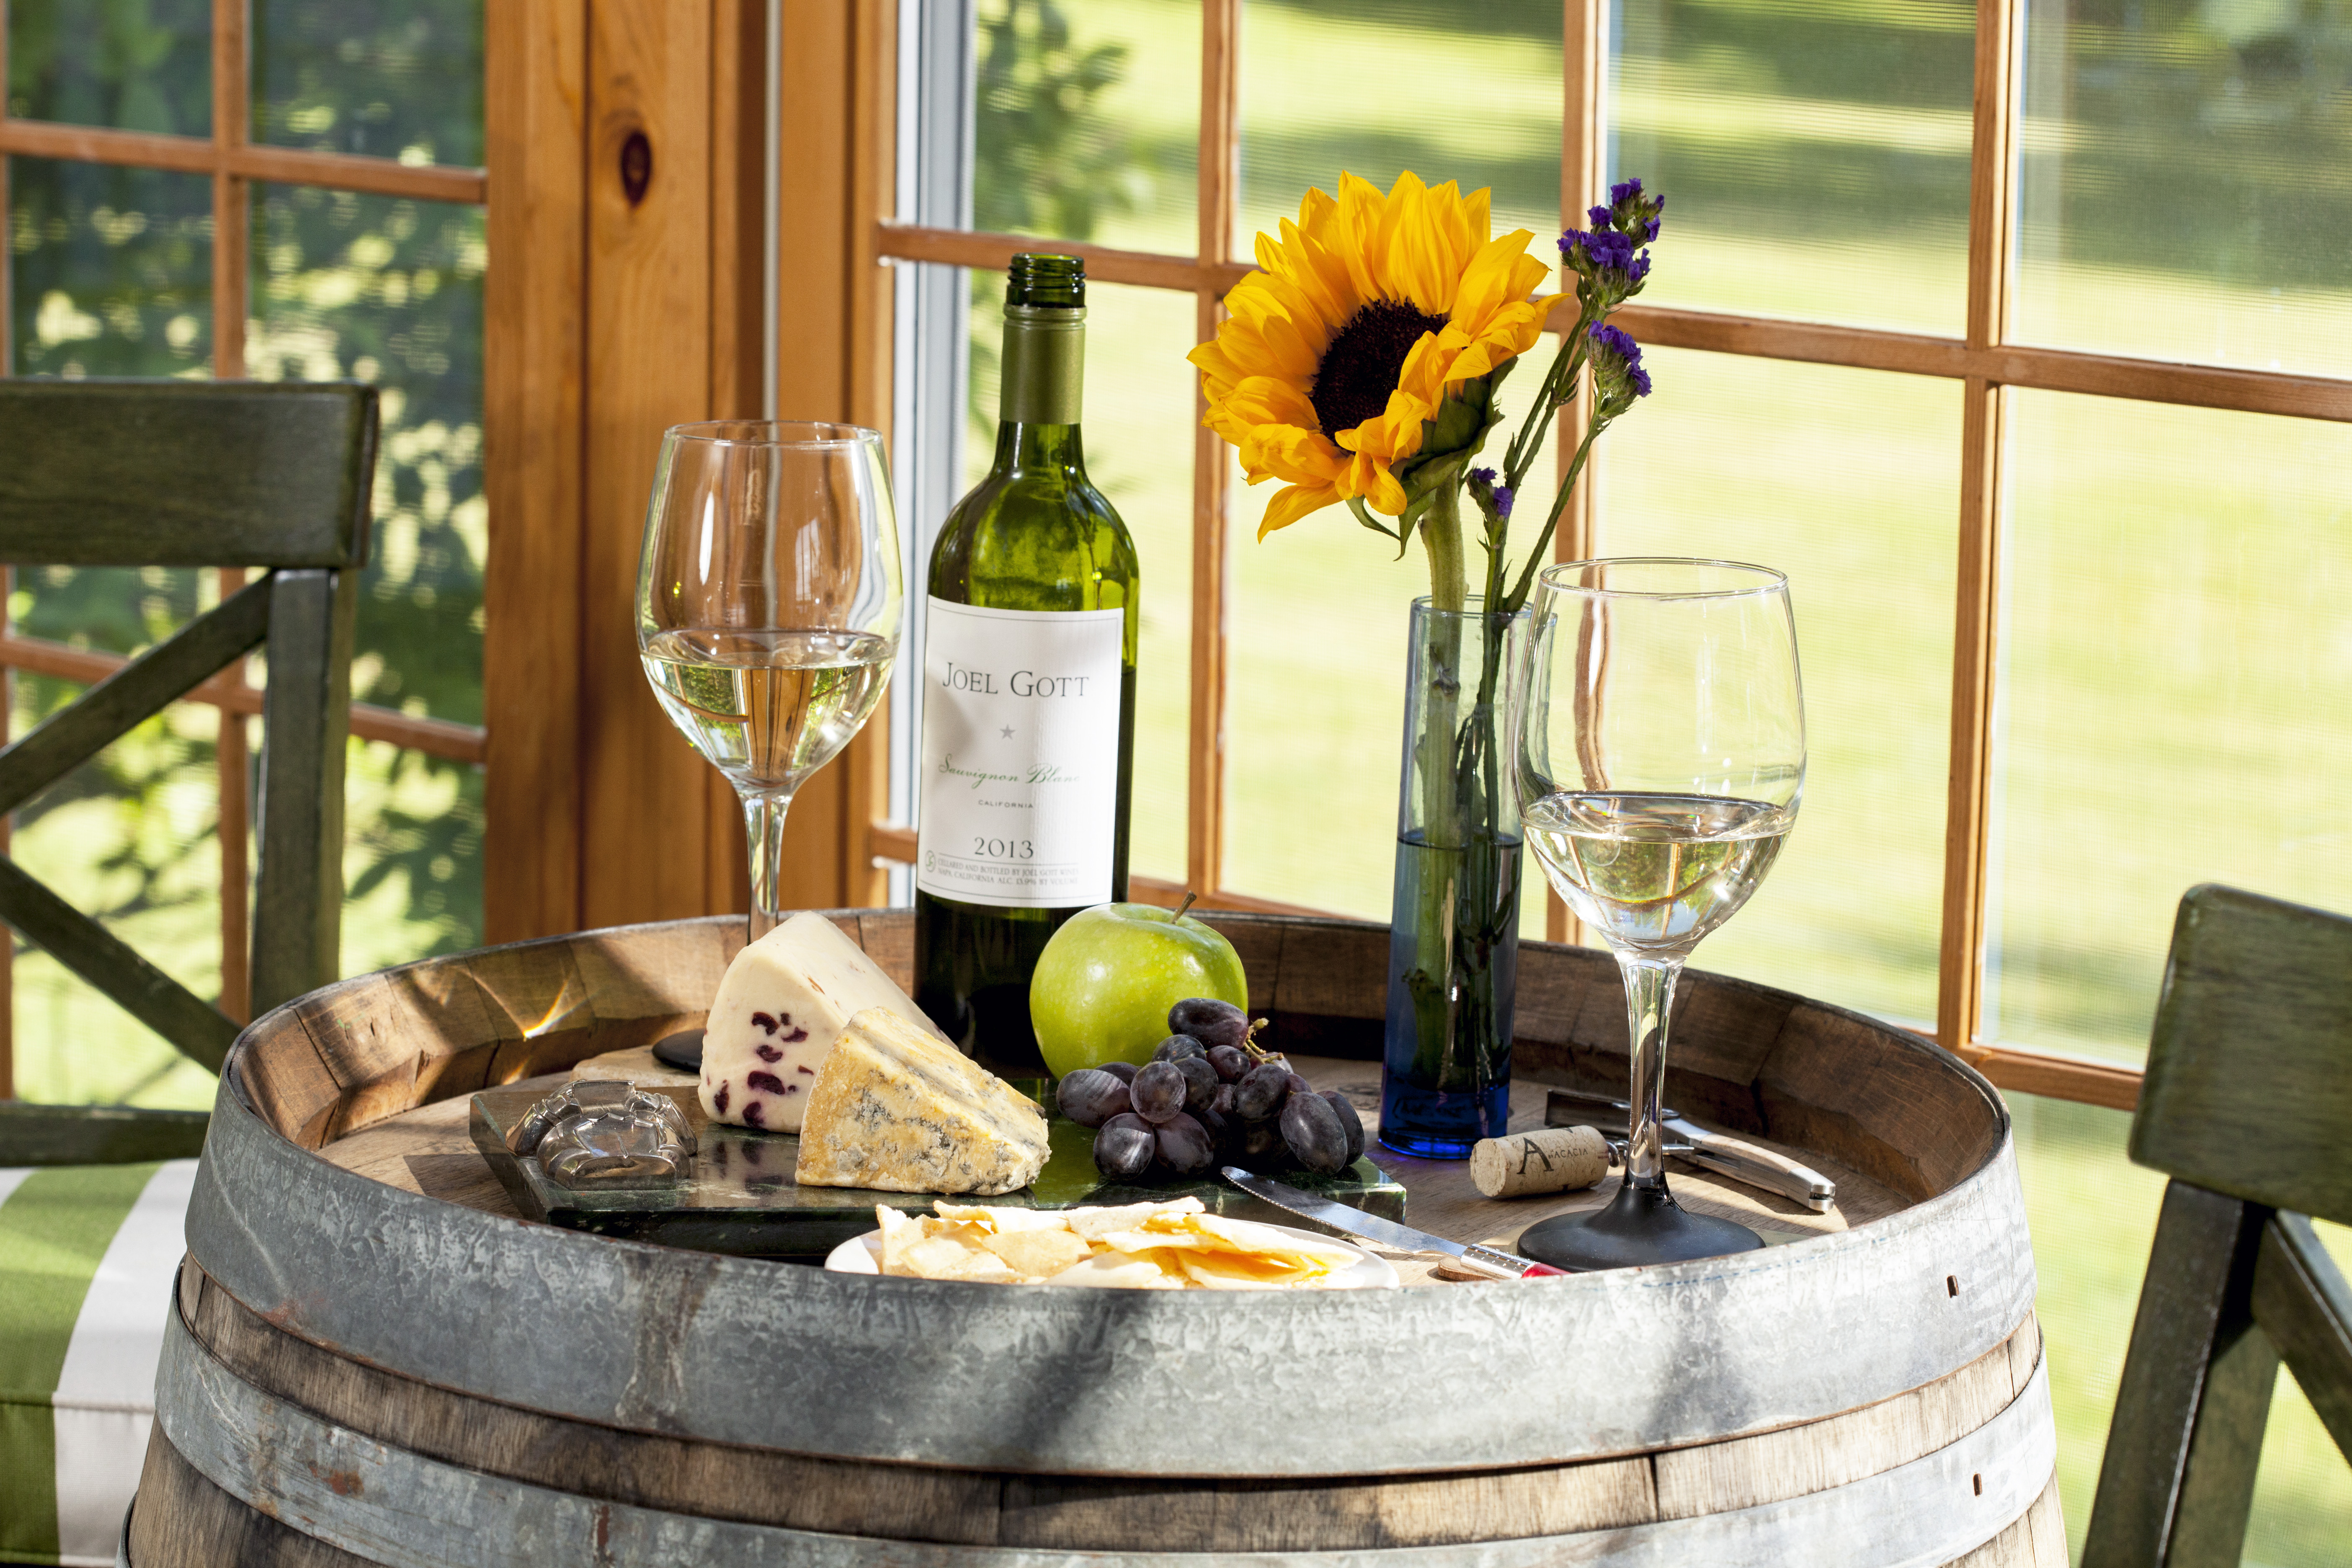 Enjoy the good things in life at the Wolf Cove Inn.